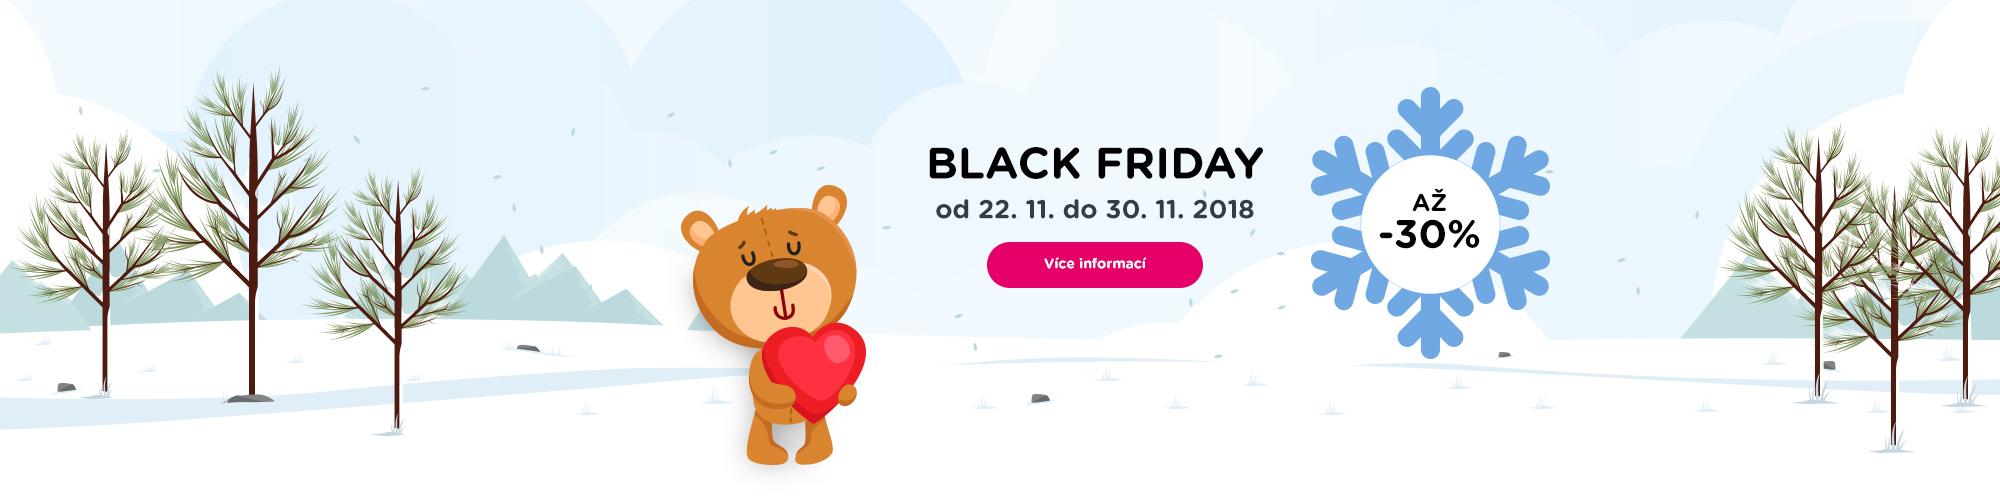 Black Friday - Babyplace